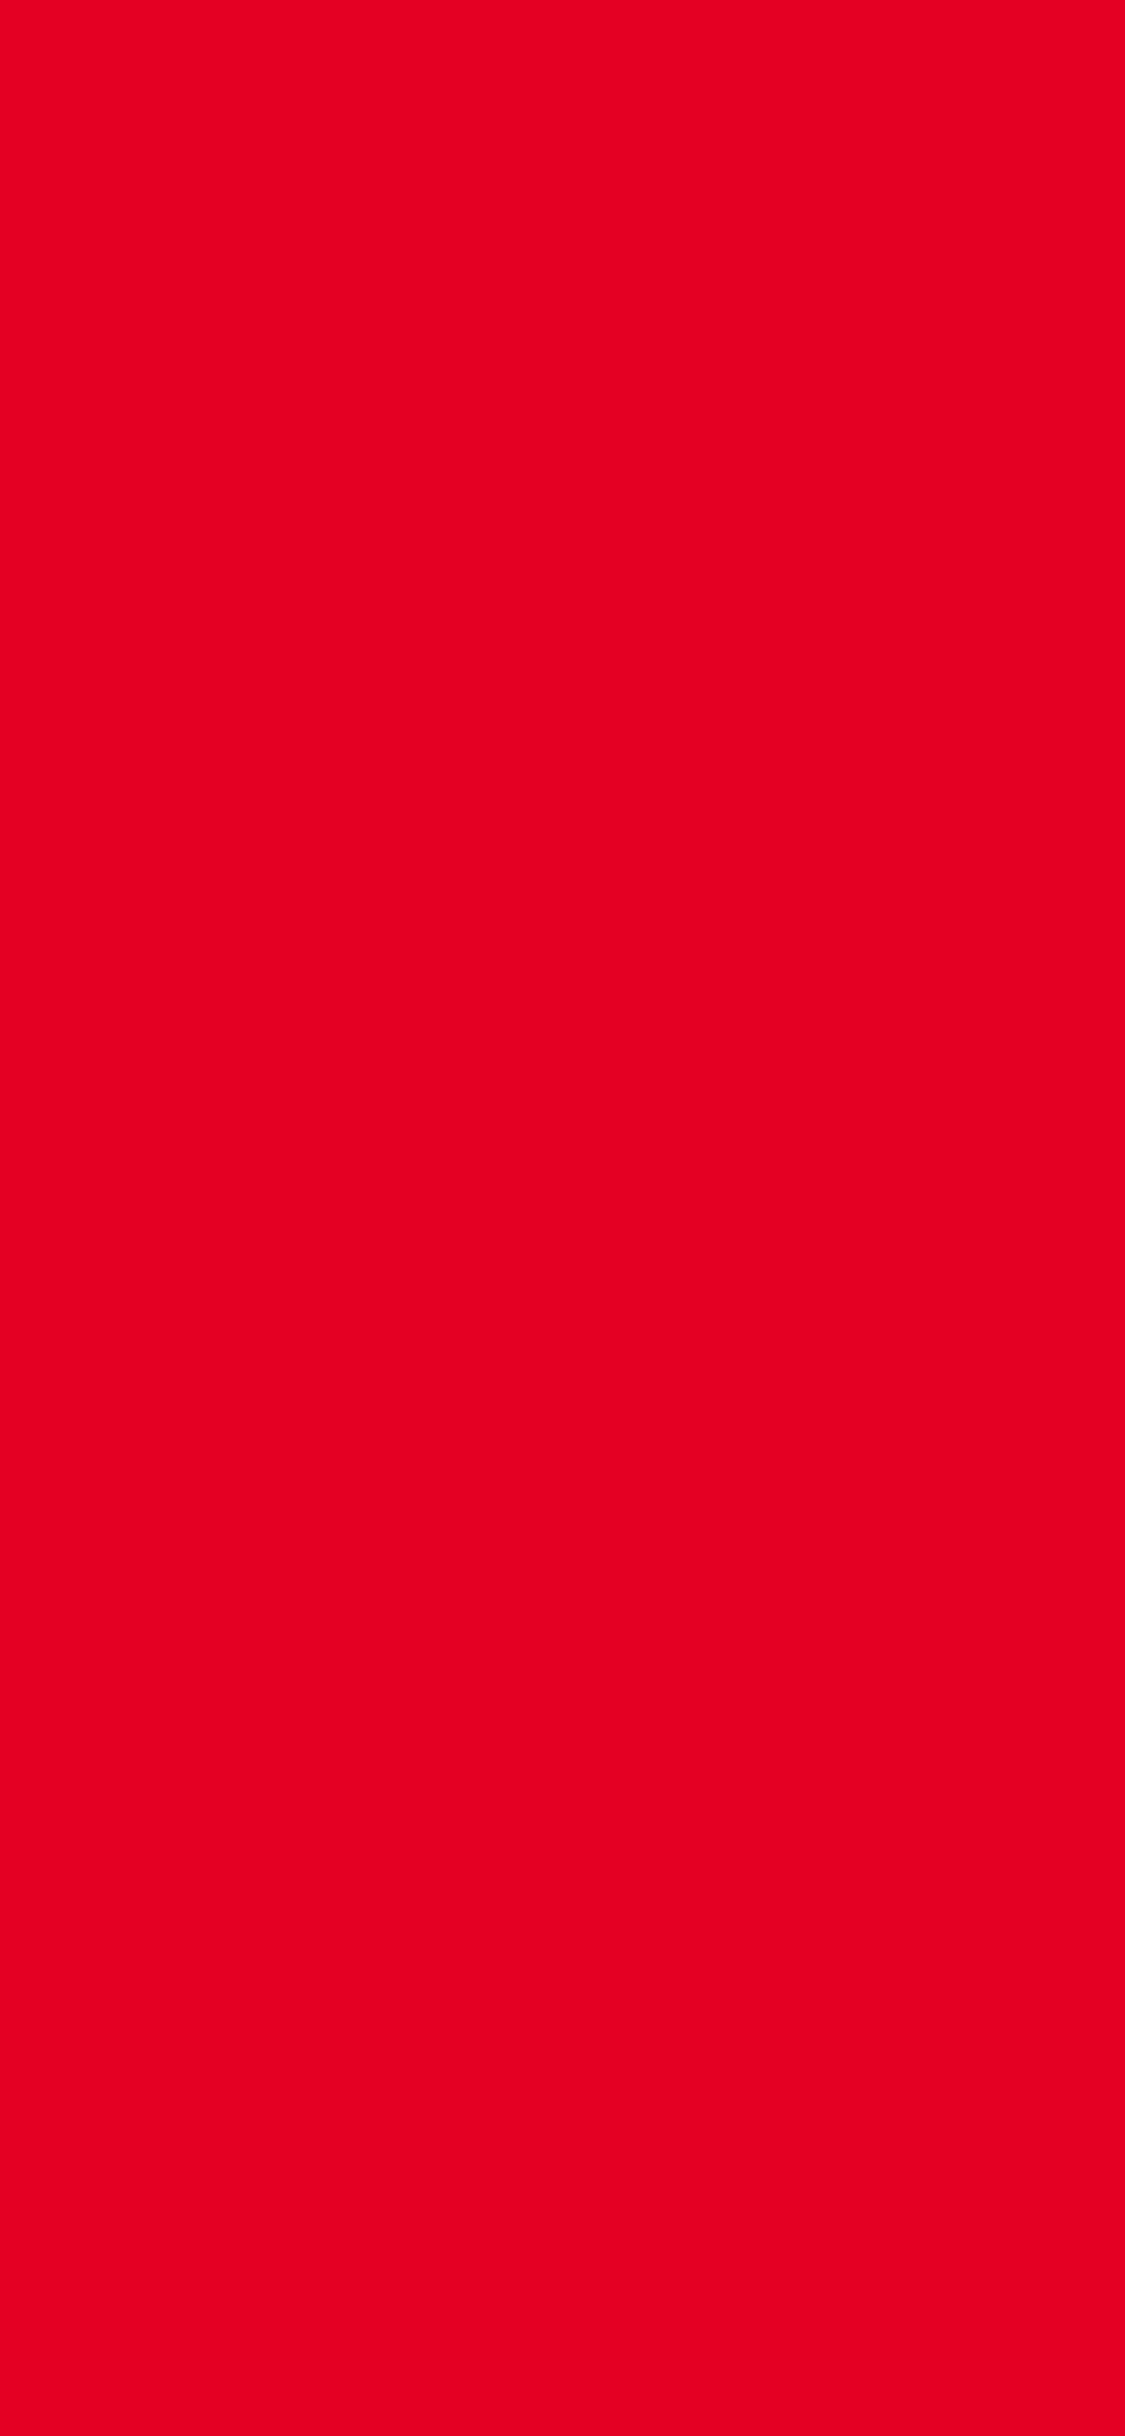 1125x2436 Cadmium Red Solid Color Background